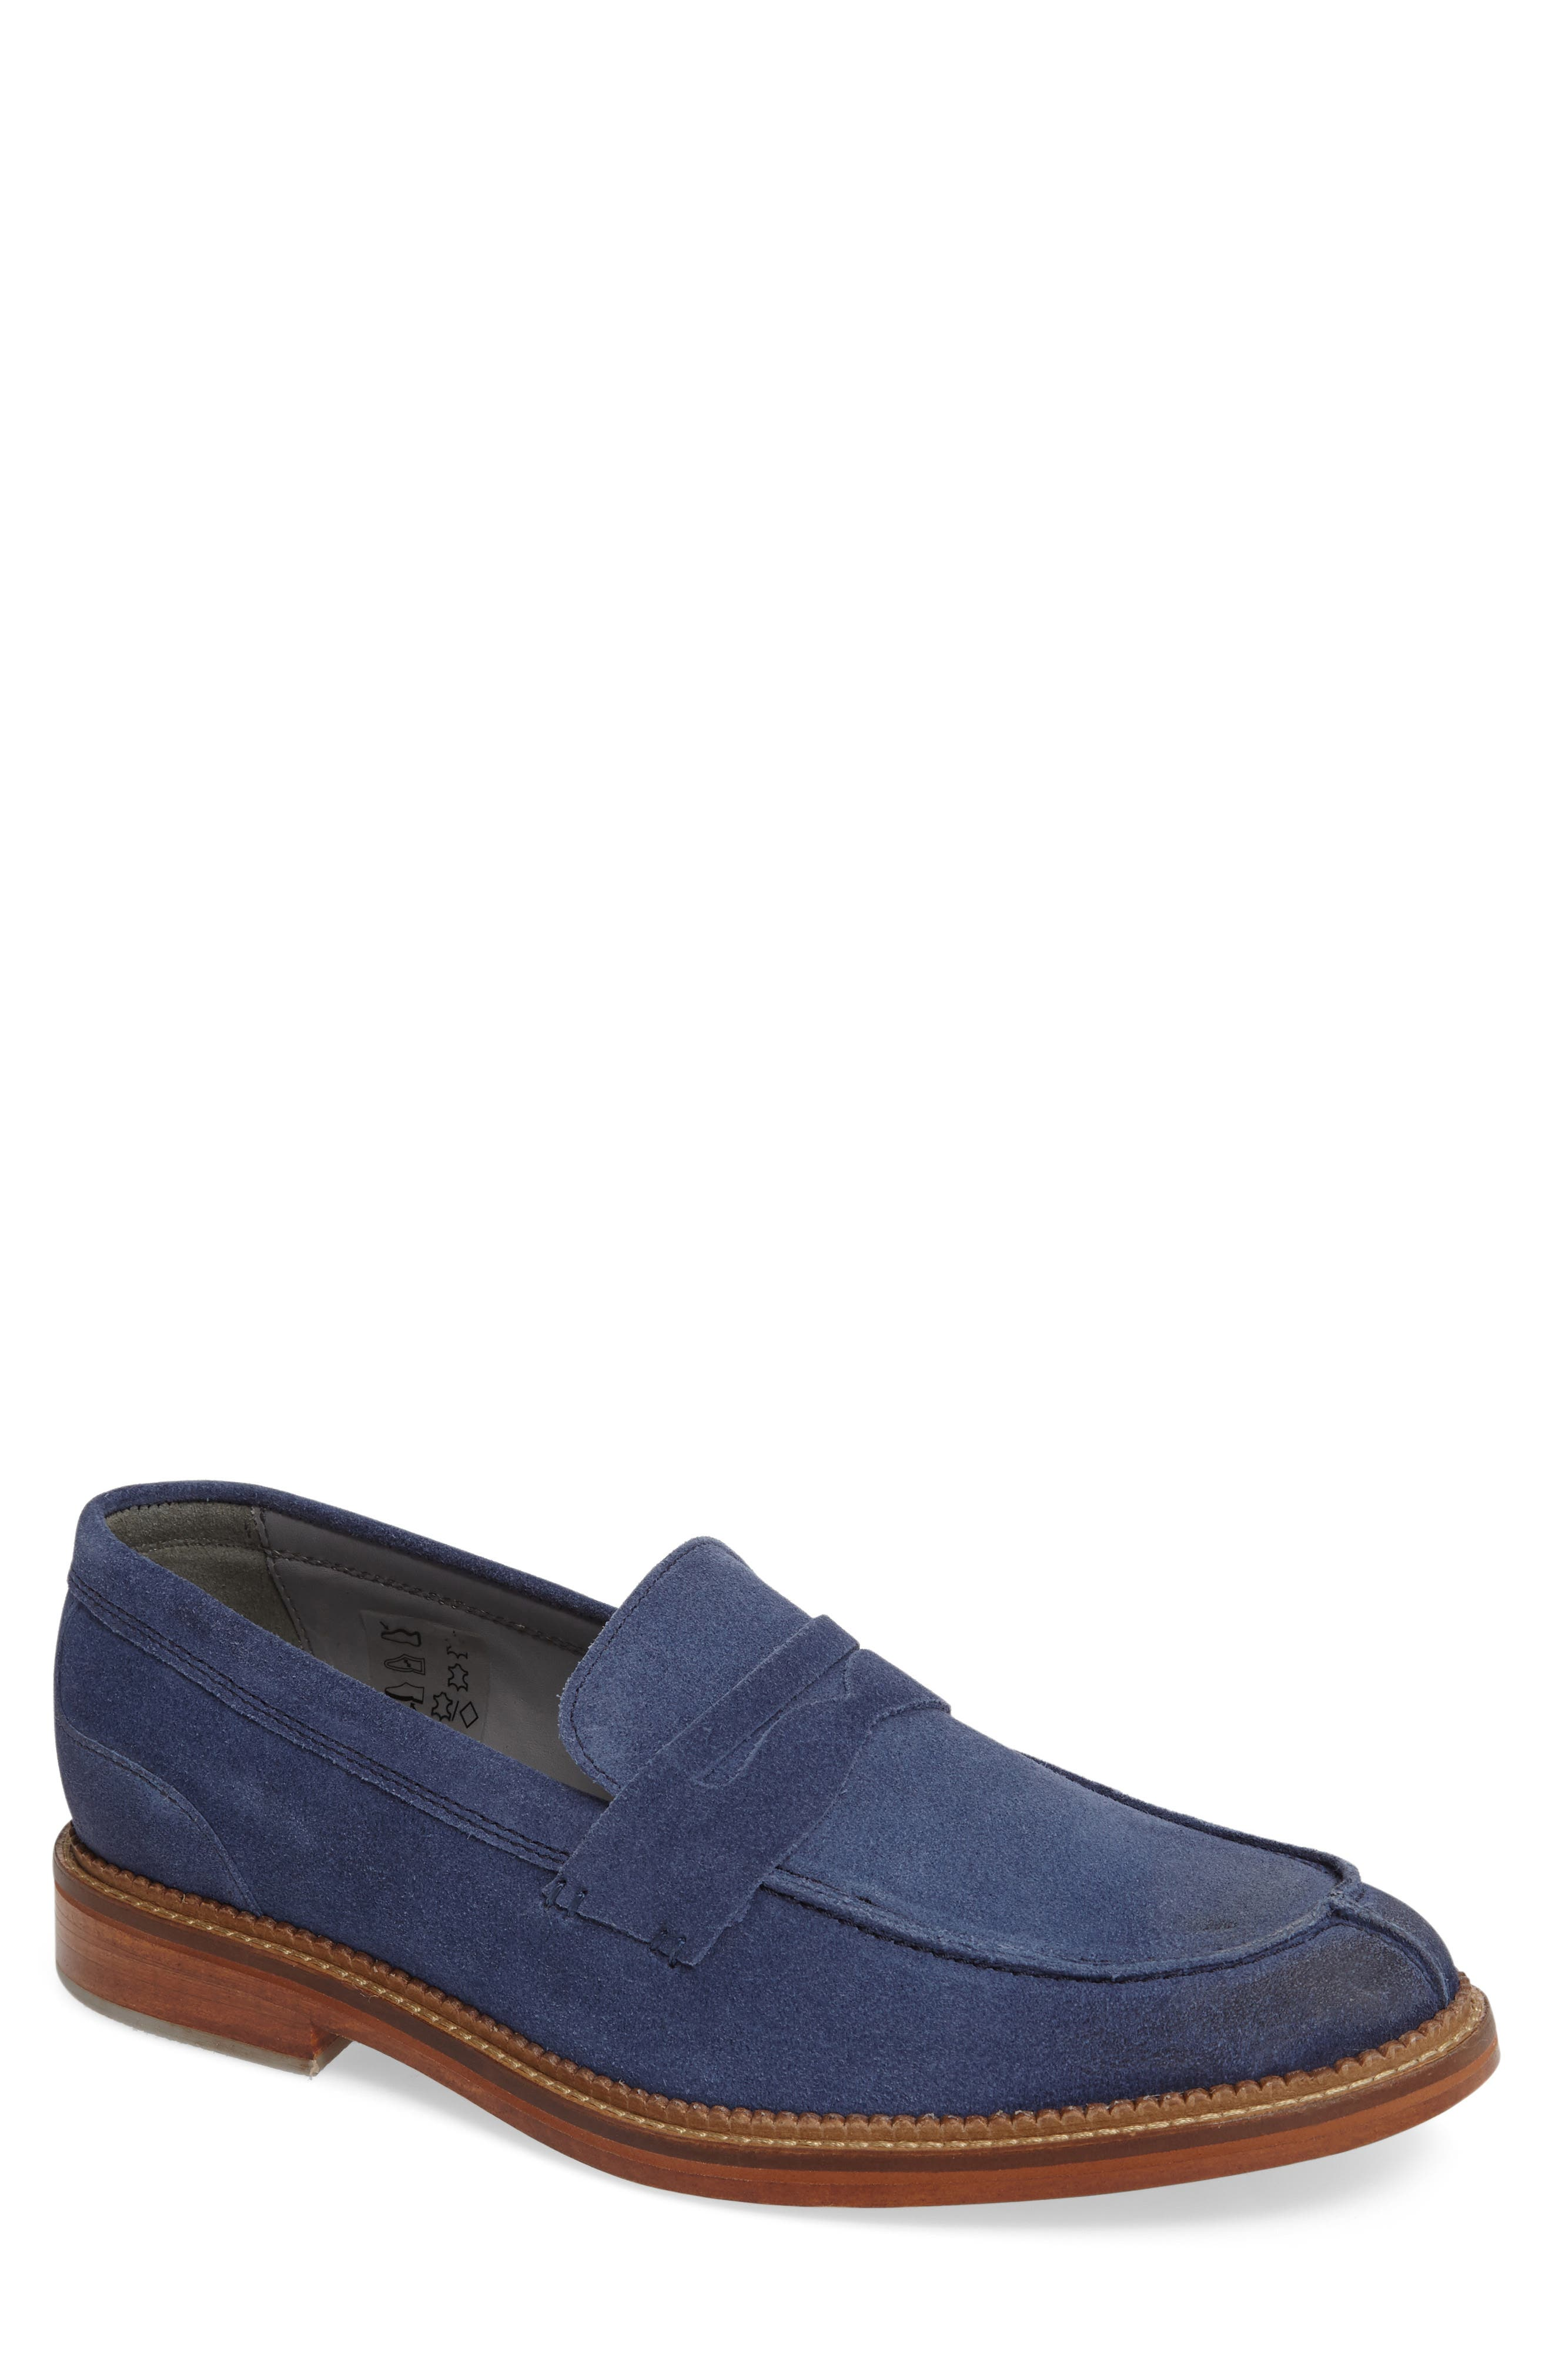 Ravenwood Penny Loafer,                             Main thumbnail 4, color,